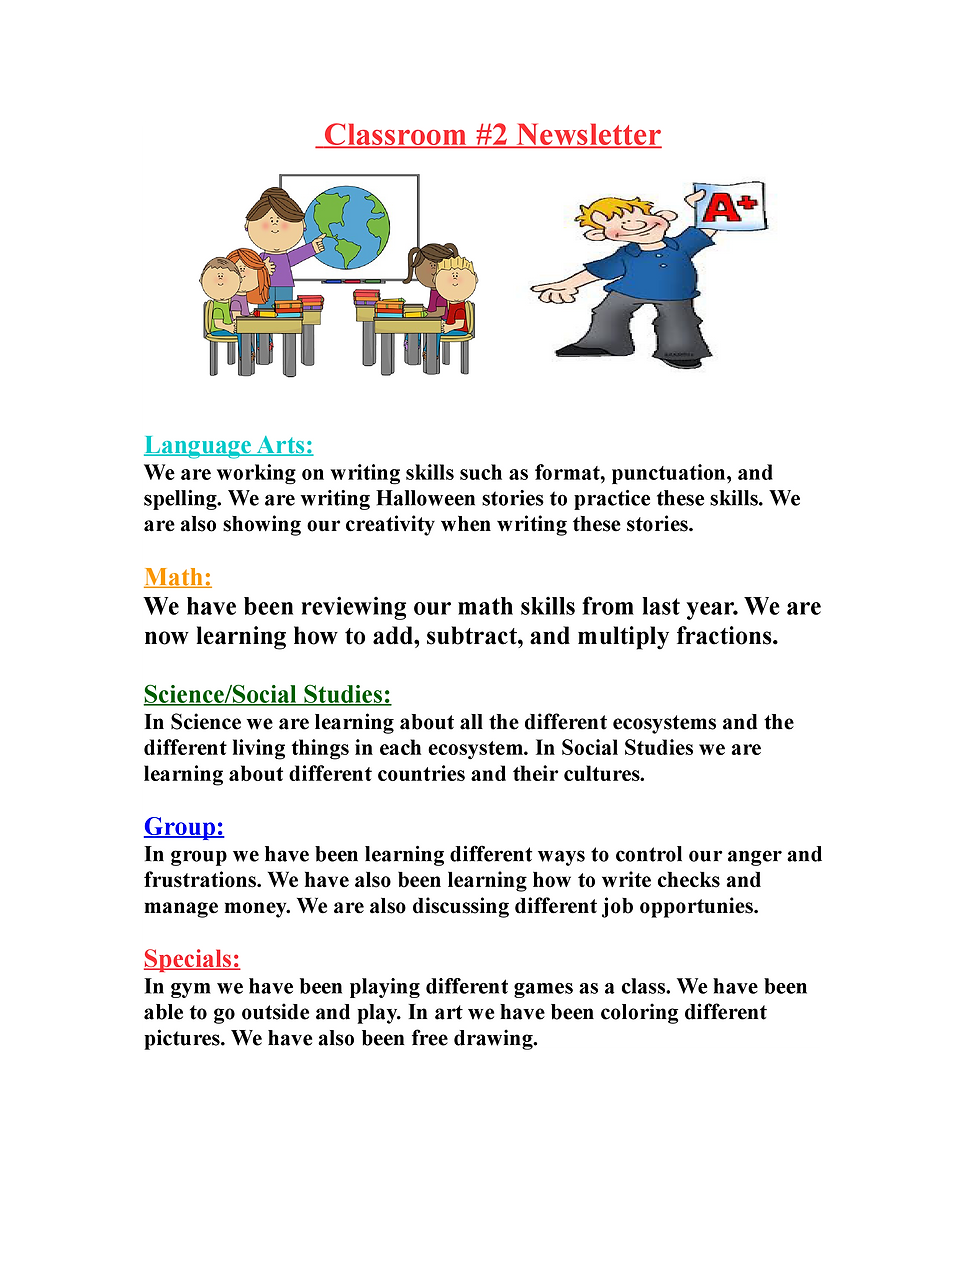 Classroom #2 Newsletter-page-0.png